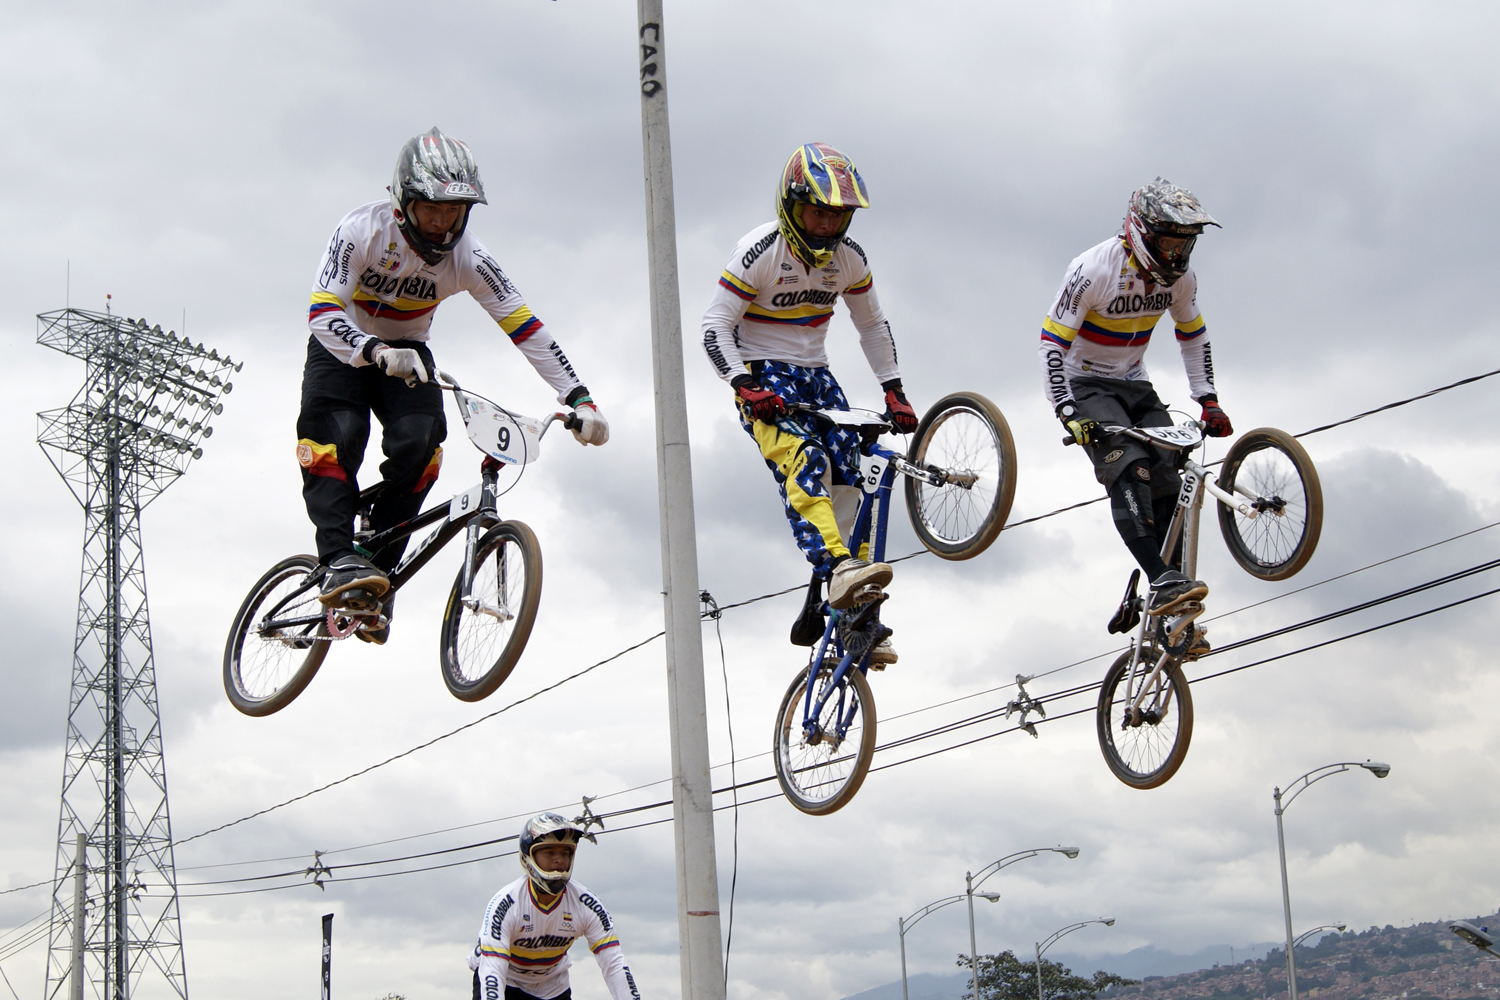 BMX COLOMBIANO A POR MAYORES RETOS